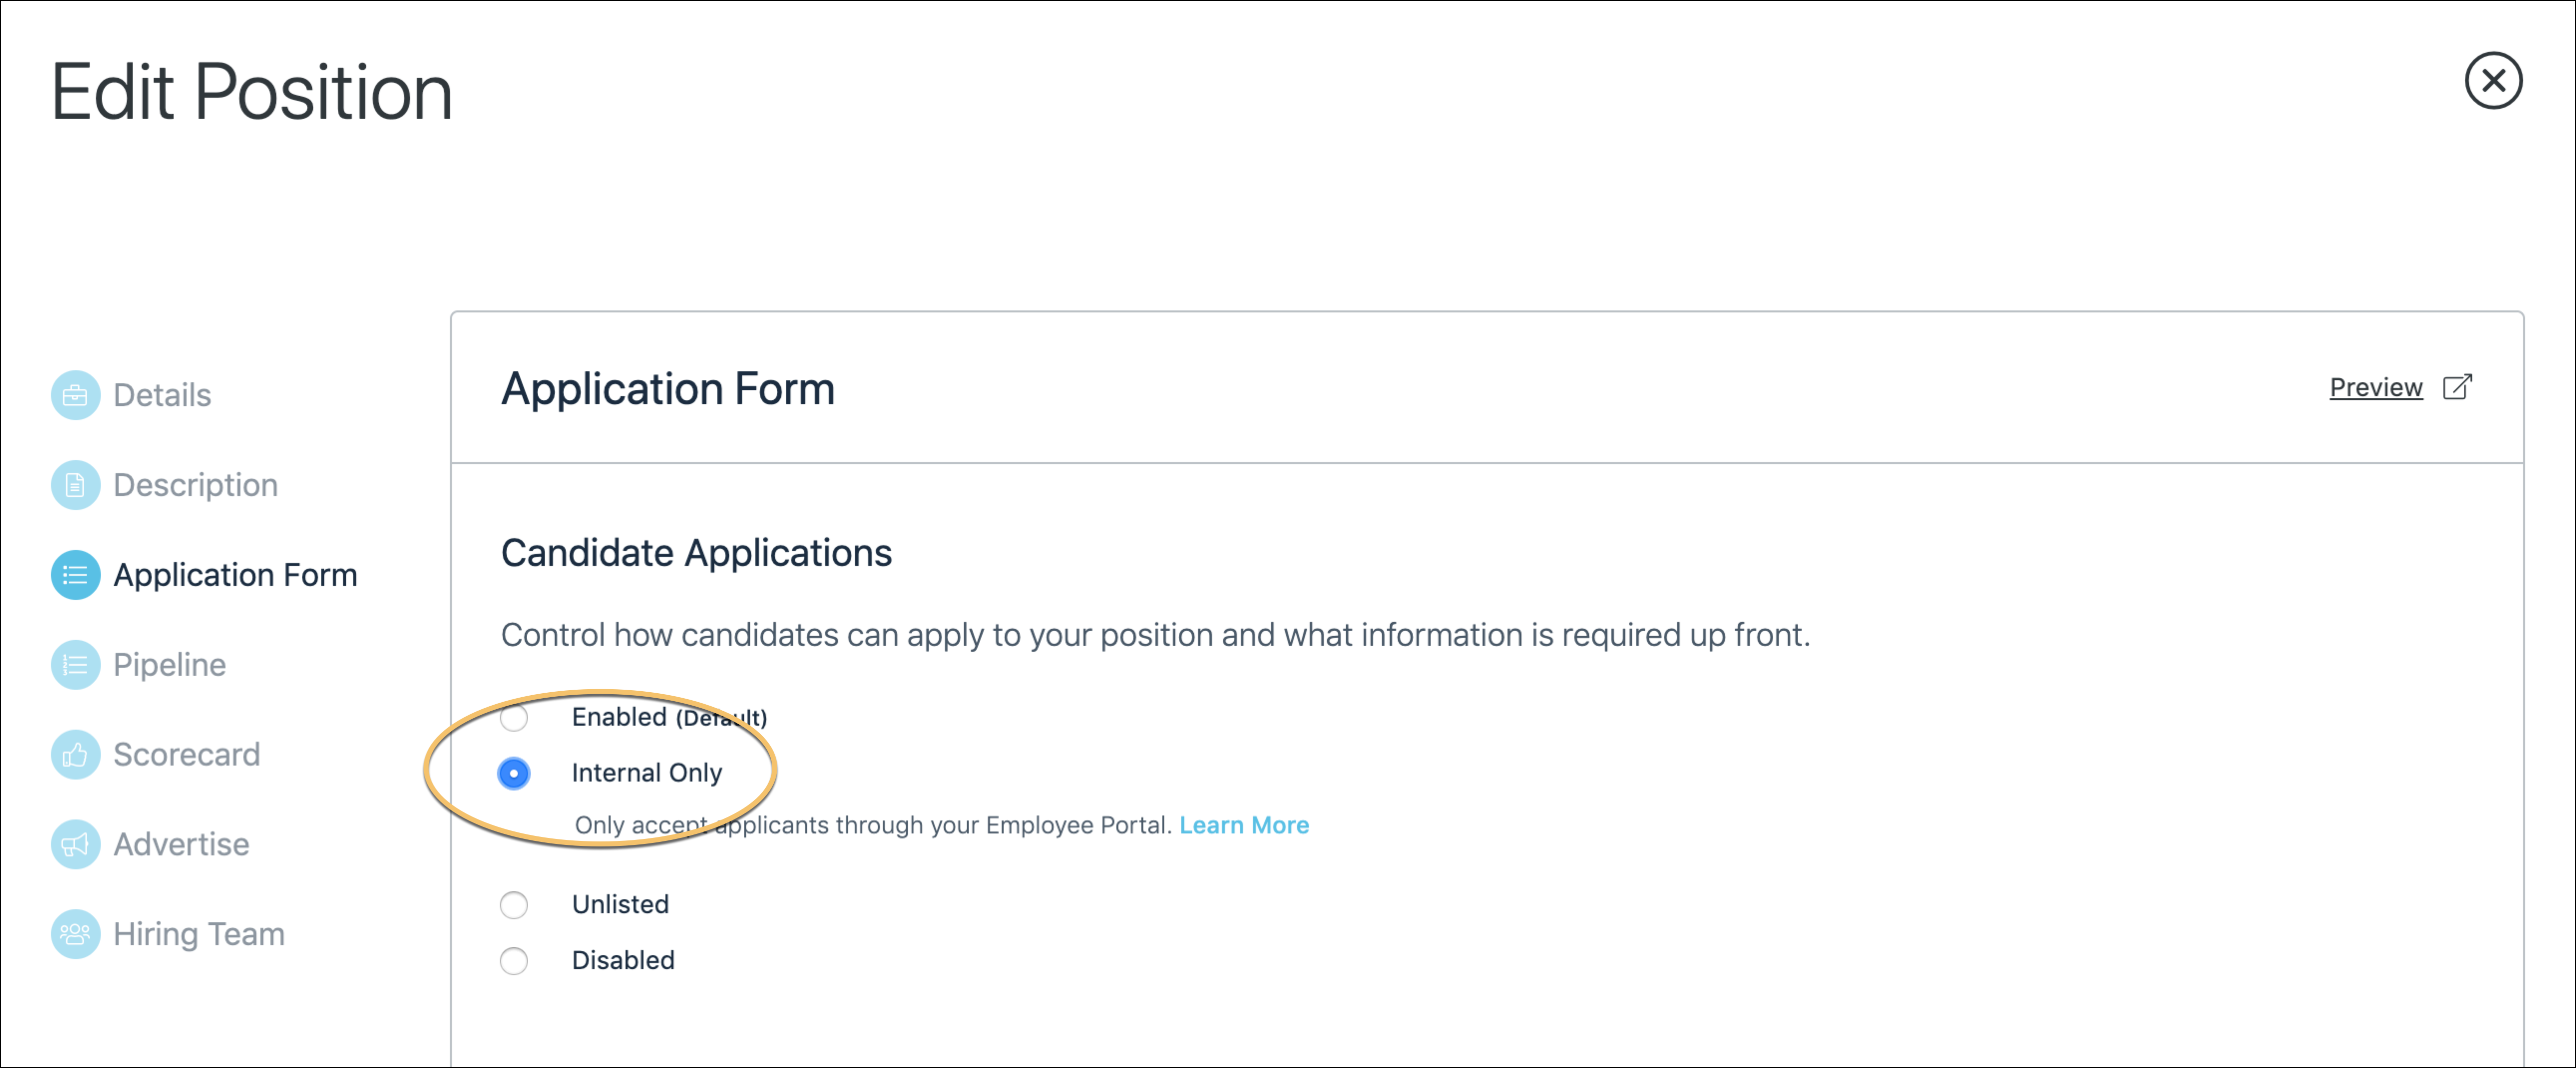 Making a position available to internal candidates only